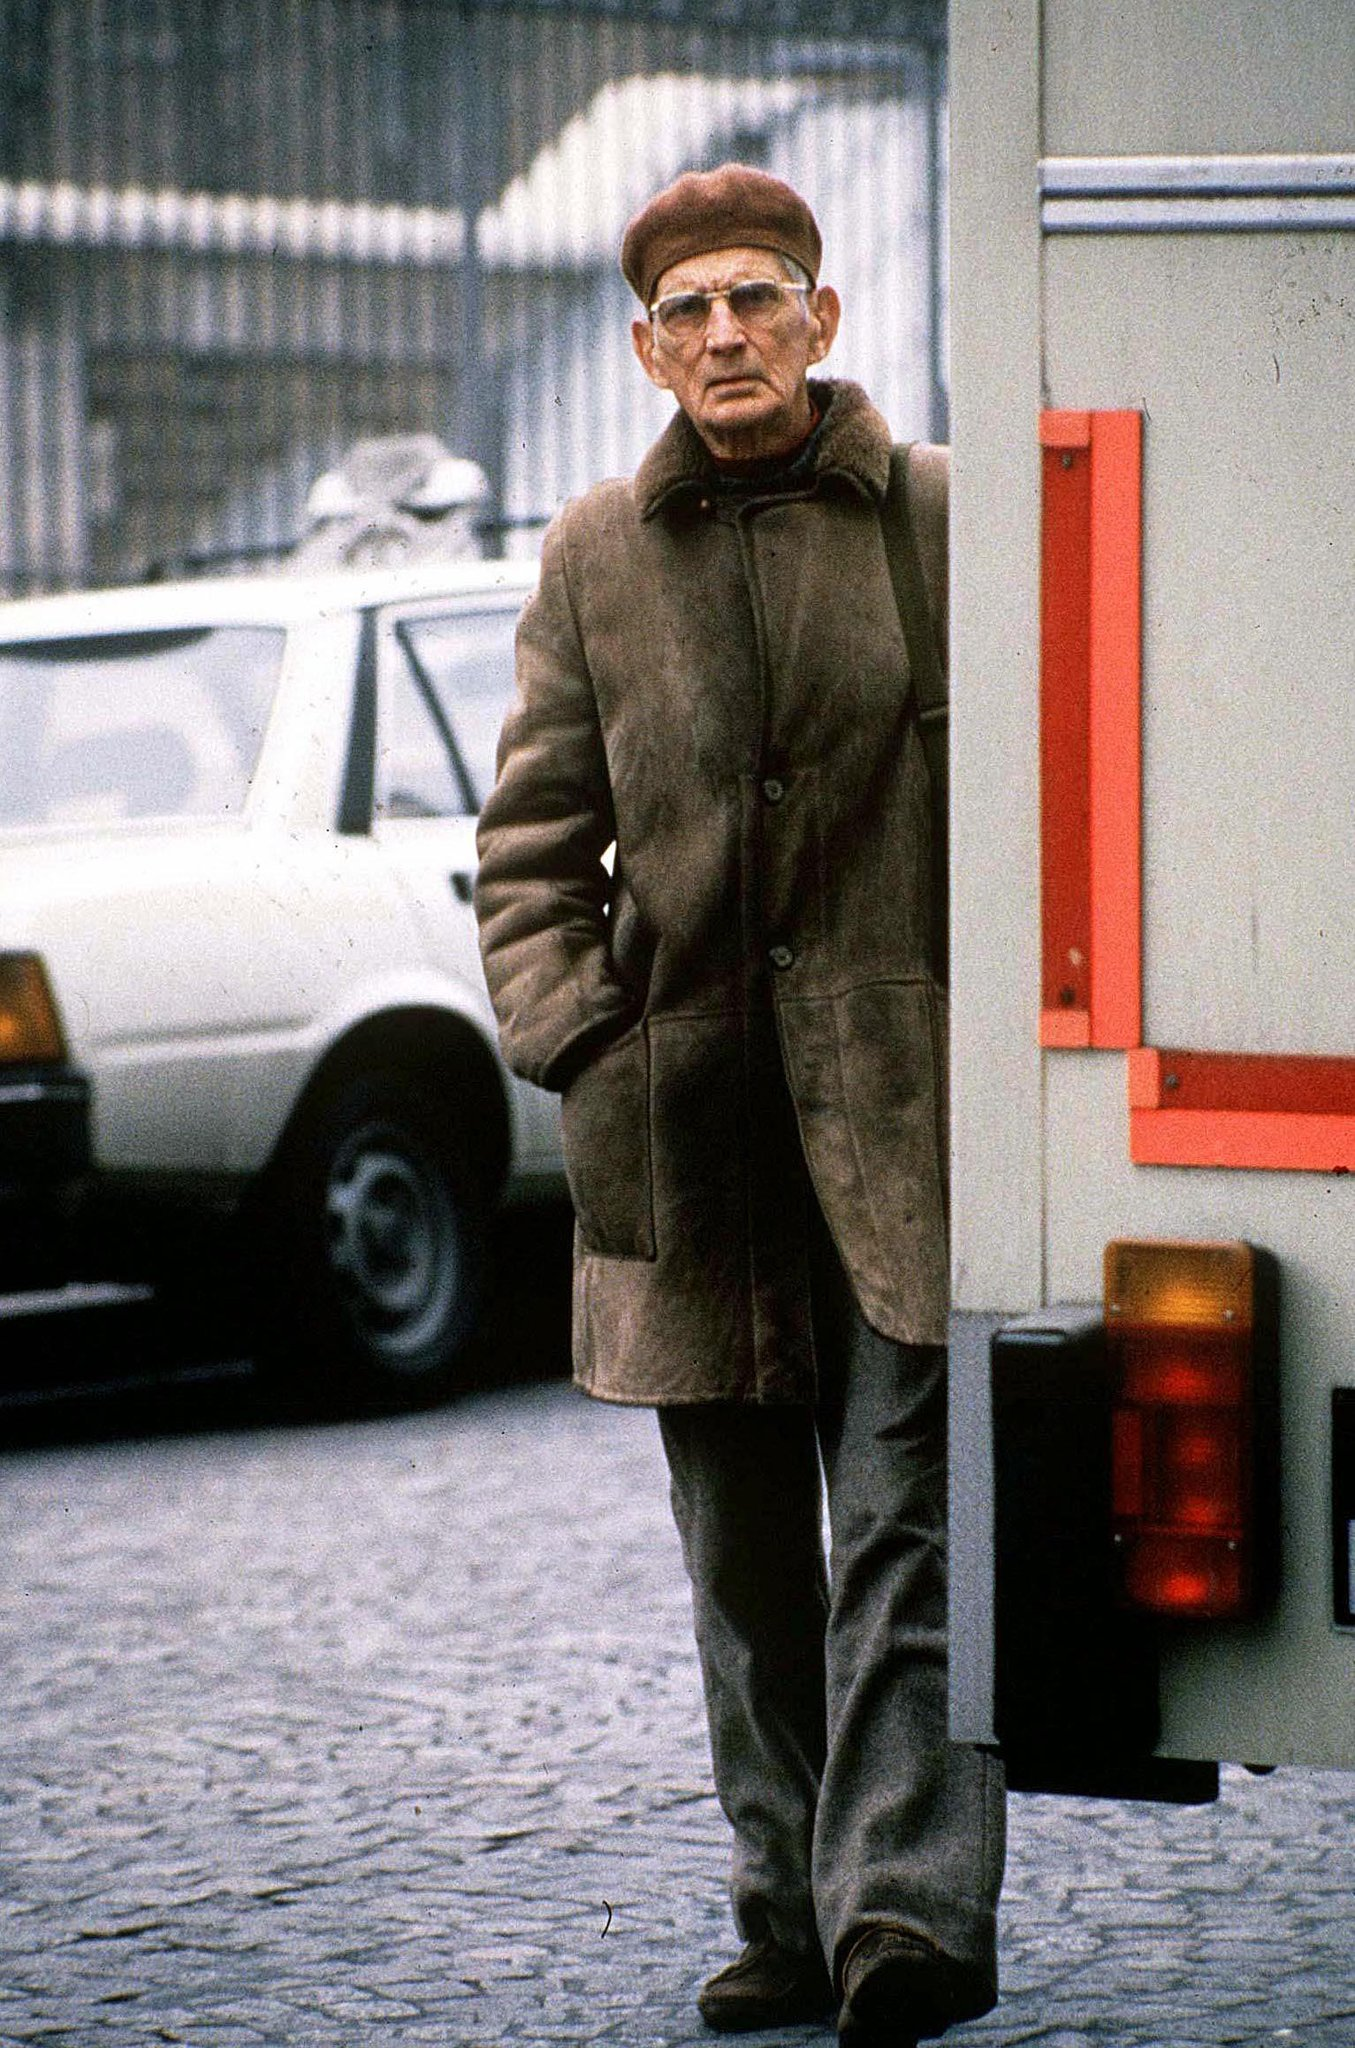 Samuel Beckett, Paris, France, April 1986. Photograph: Rex/Shutterstock. https://t.co/WVbyV9oeZl